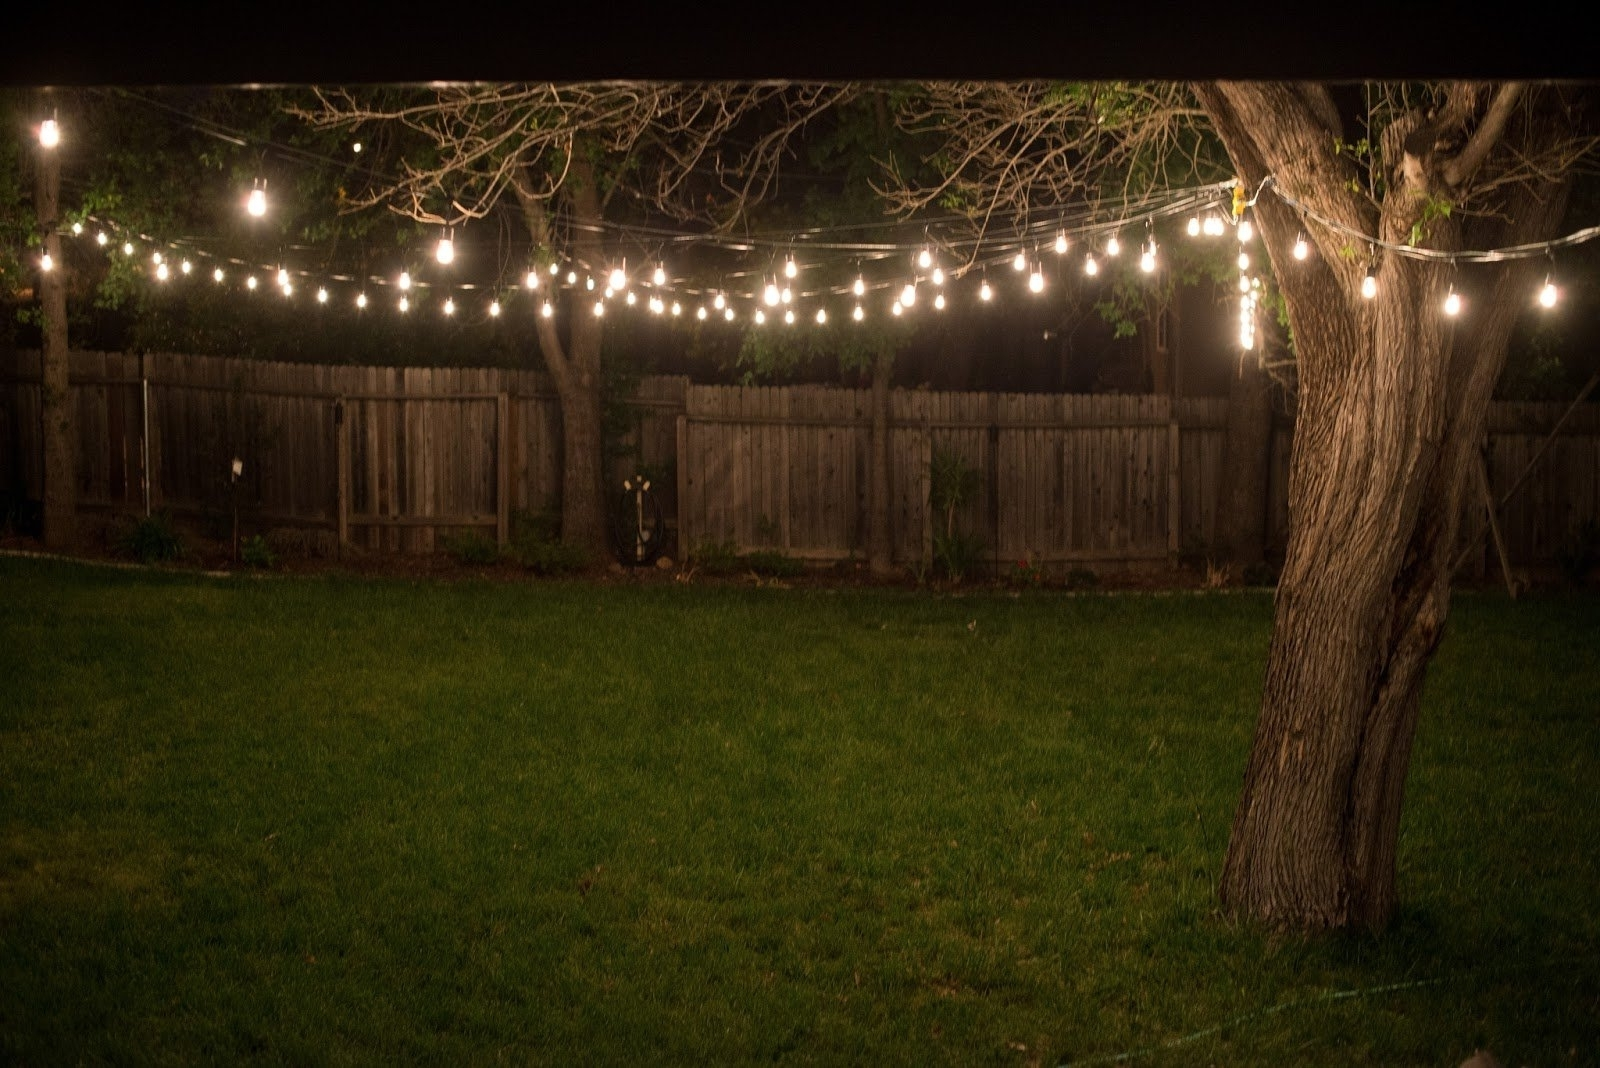 2018 Garden Outdoor String Lights – Florist H&g Intended For Garden And Outdoor String Lights (View 1 of 20)